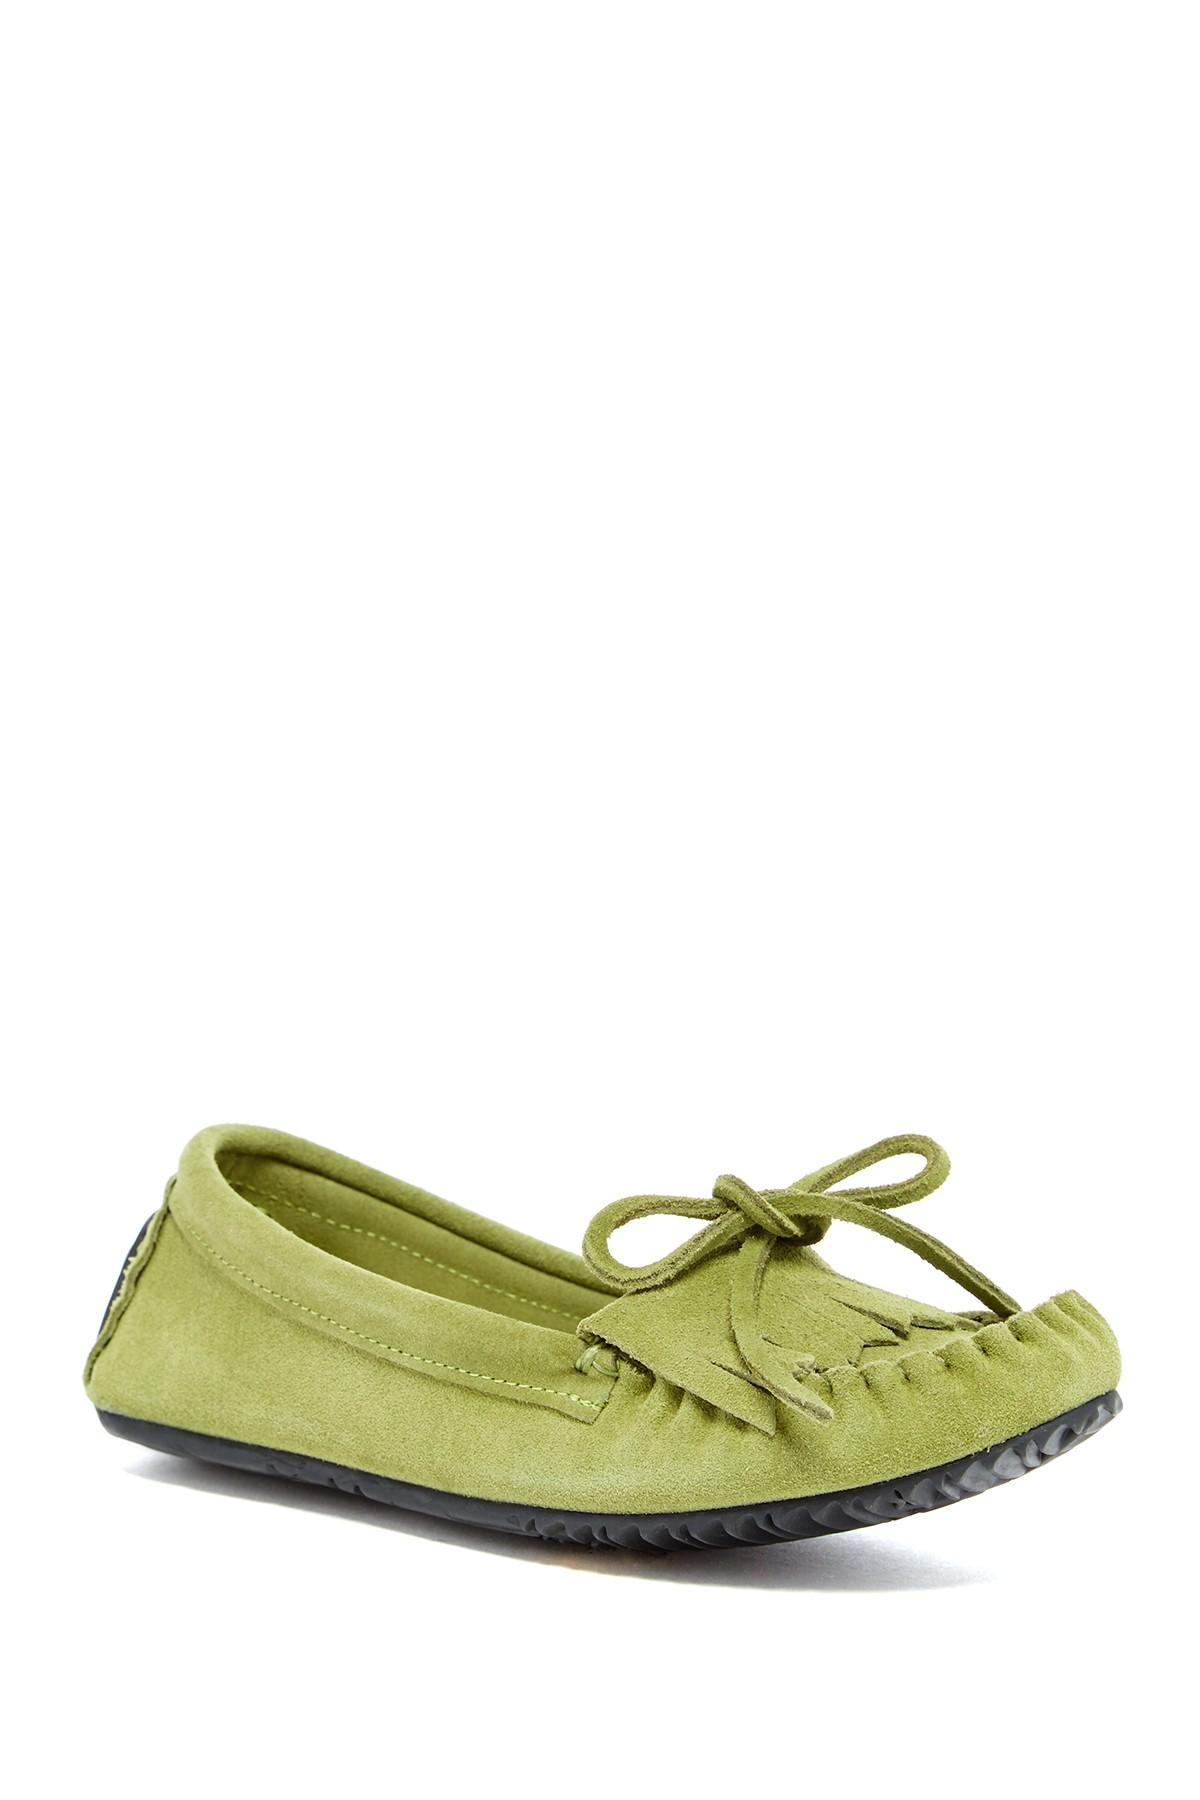 Lyst Manitobah Mukluks Sunshine Suede Moccasin In Green